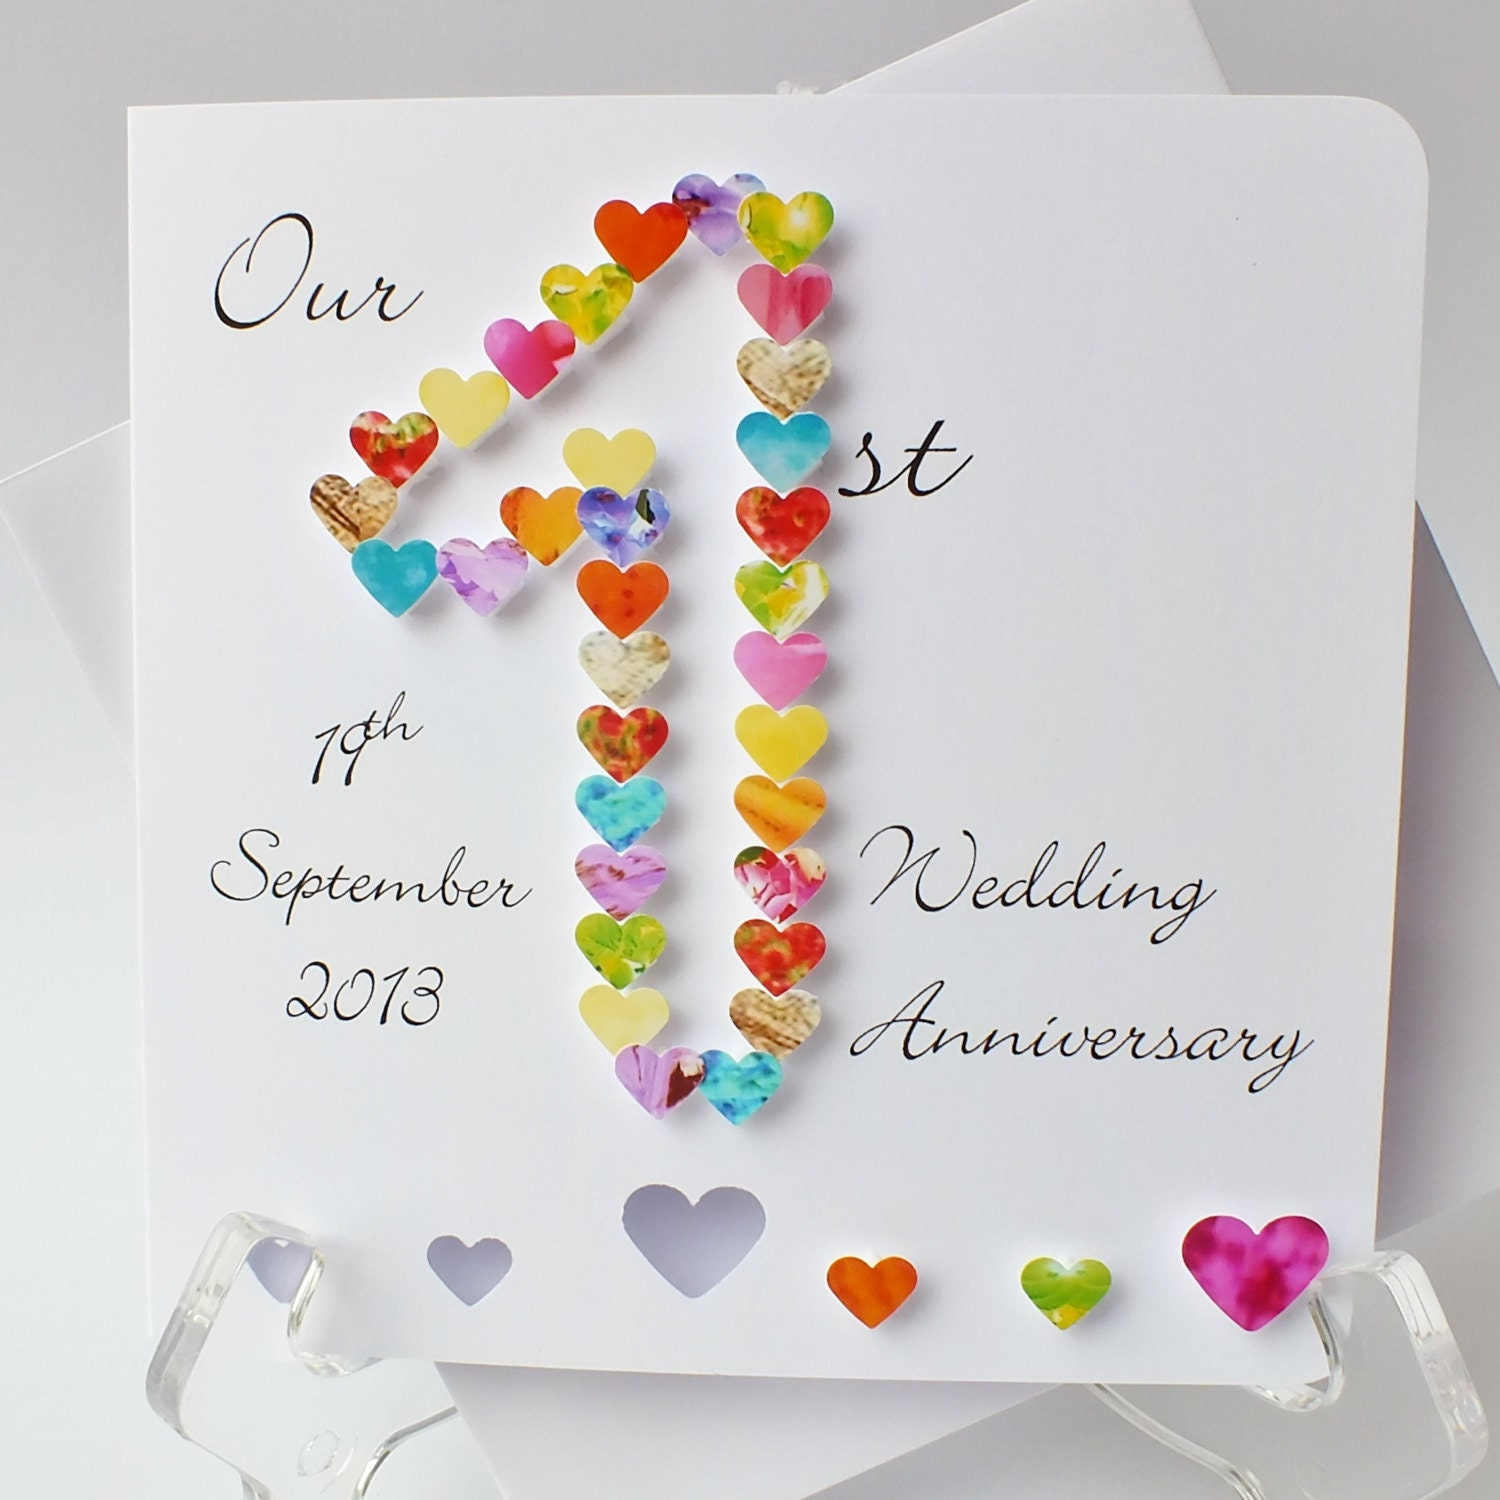 St wedding anniversary card handmade personalised first